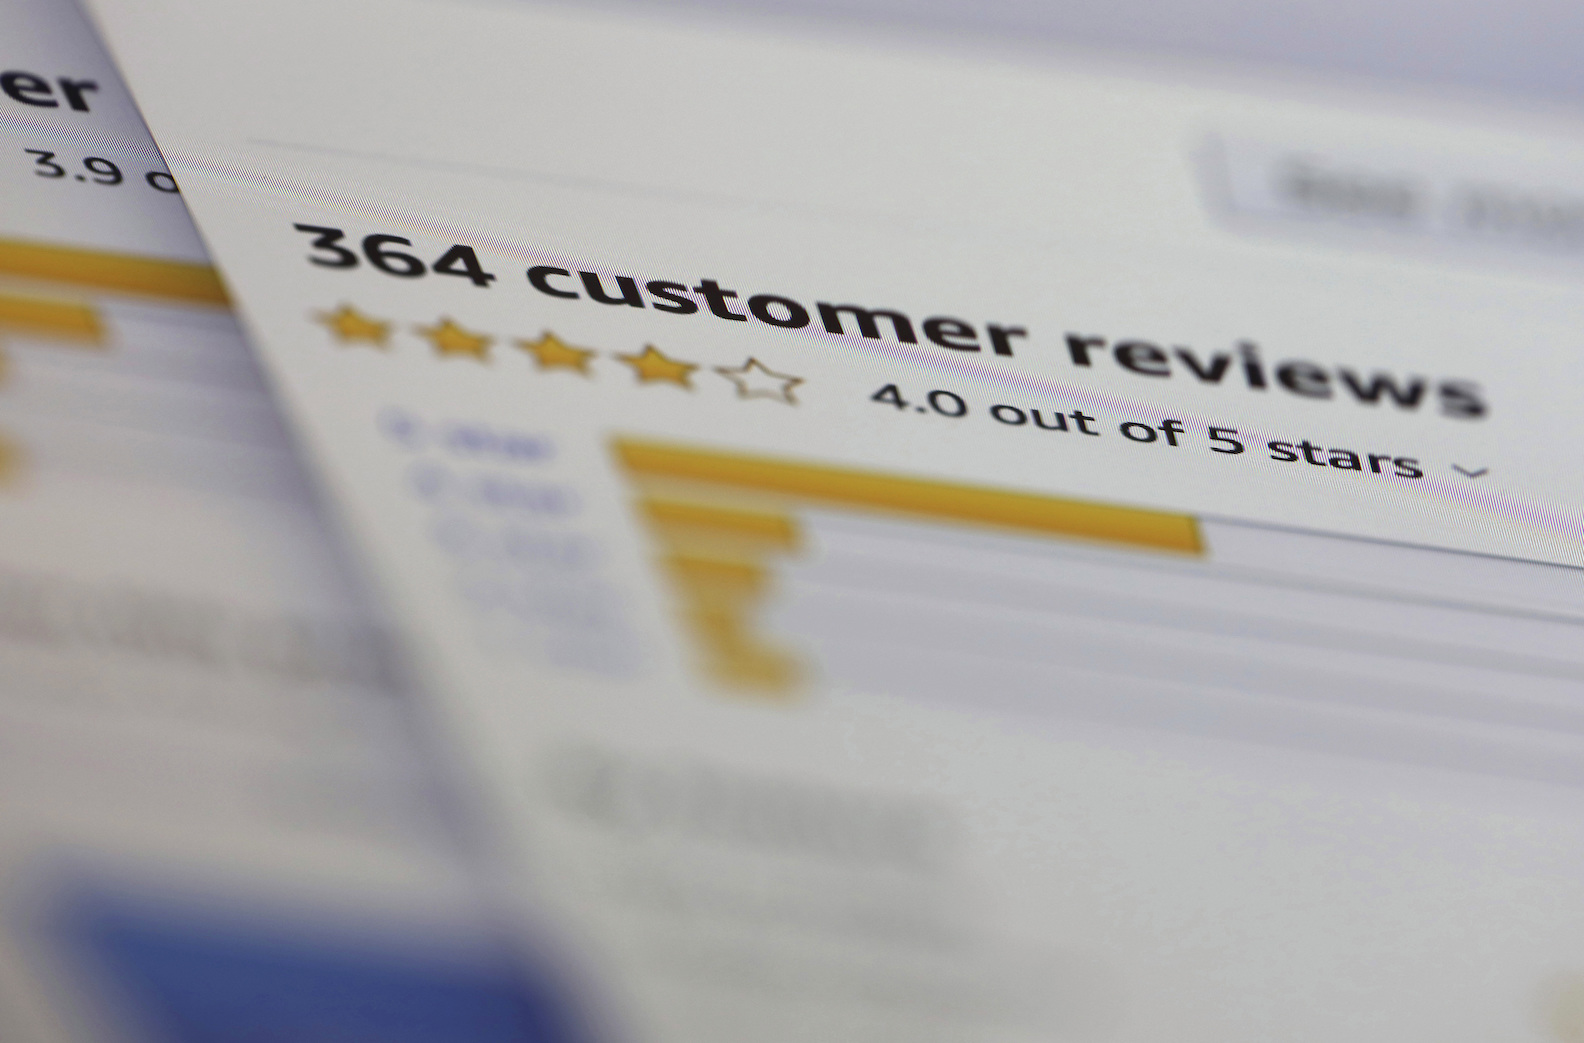 """Amazon has sought to reverse some perceptions that it doesn't do enough to counteract """"bad actors"""" that may sell counterfeit goods on its marketplace, but now it is calling out social media companies to help it overcome another problem on its platform: fake or incentivized reviews."""